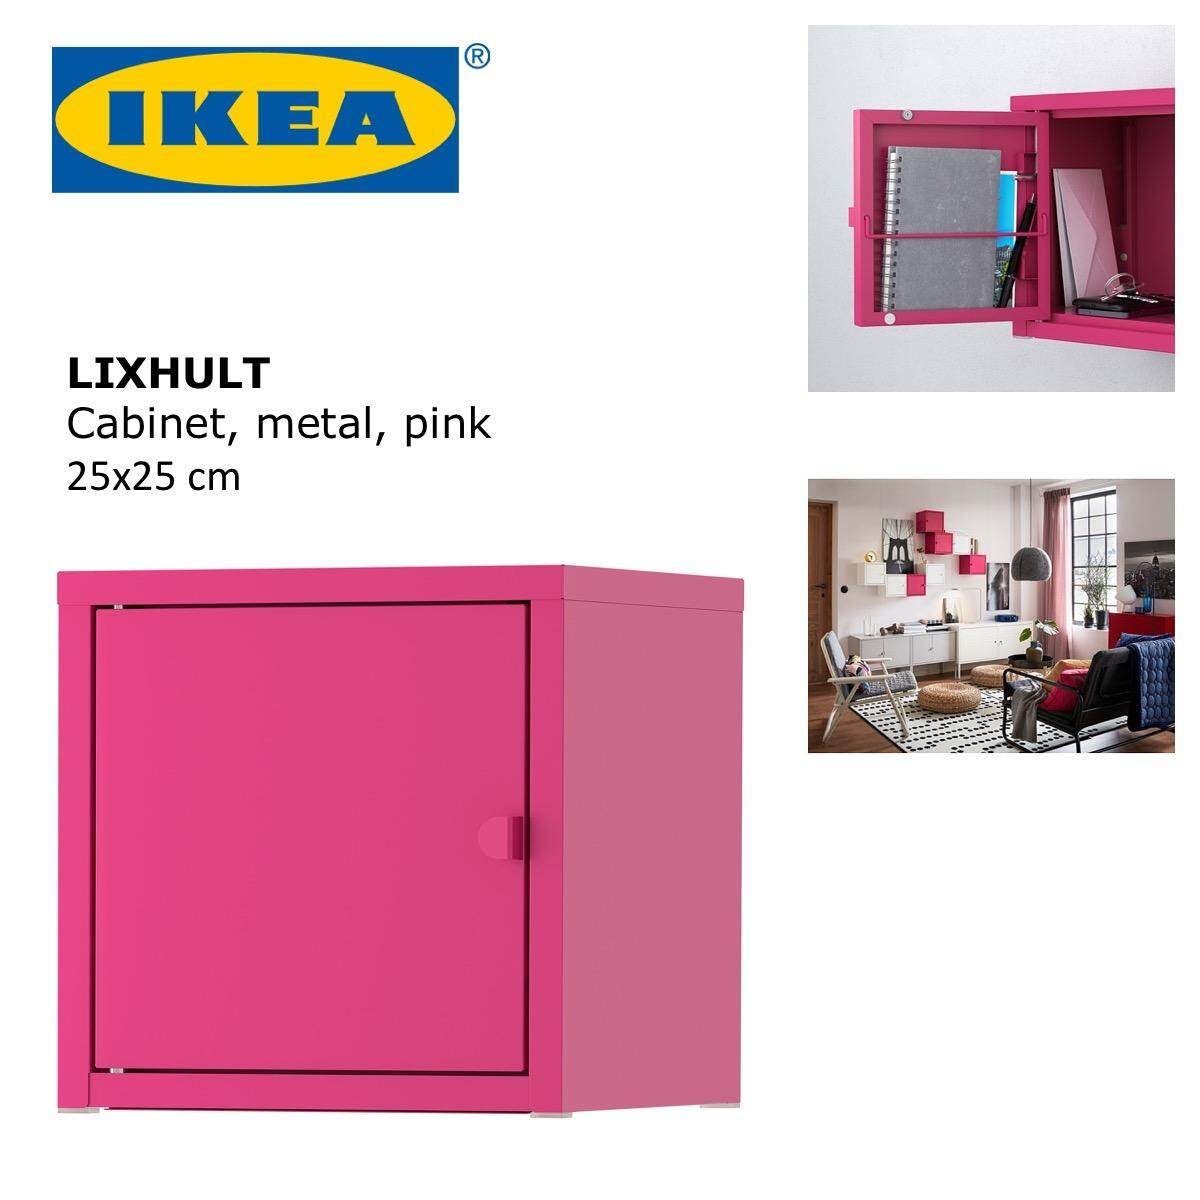 Ikea Lixhult Steel Office Room Home Organizer Space Saver Cabinet Metal Pink